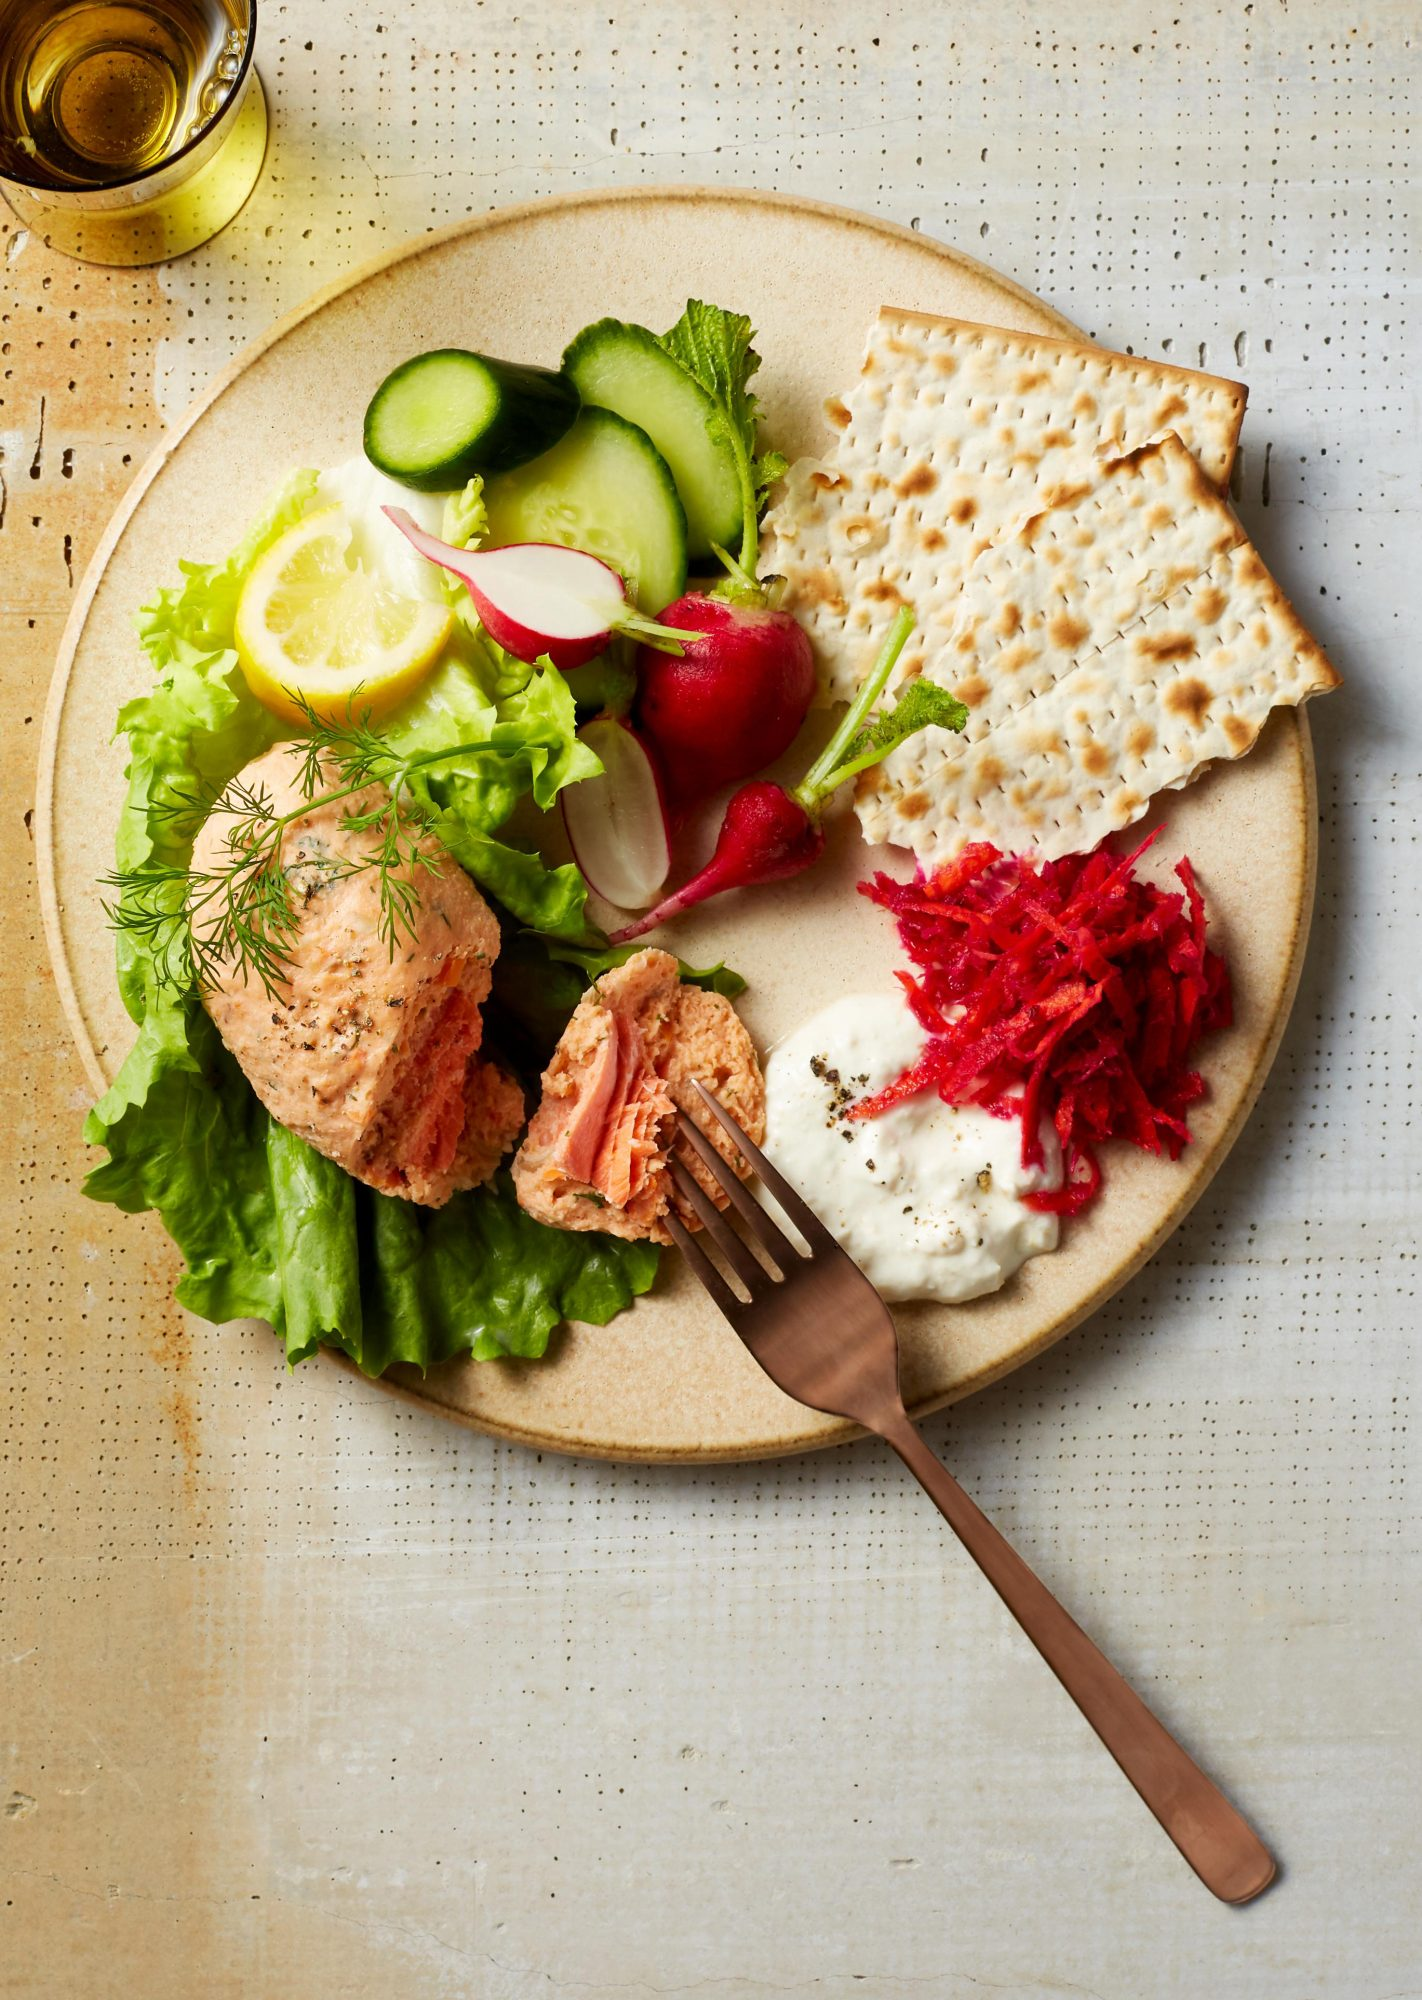 salmon and cod gefilte fish plated